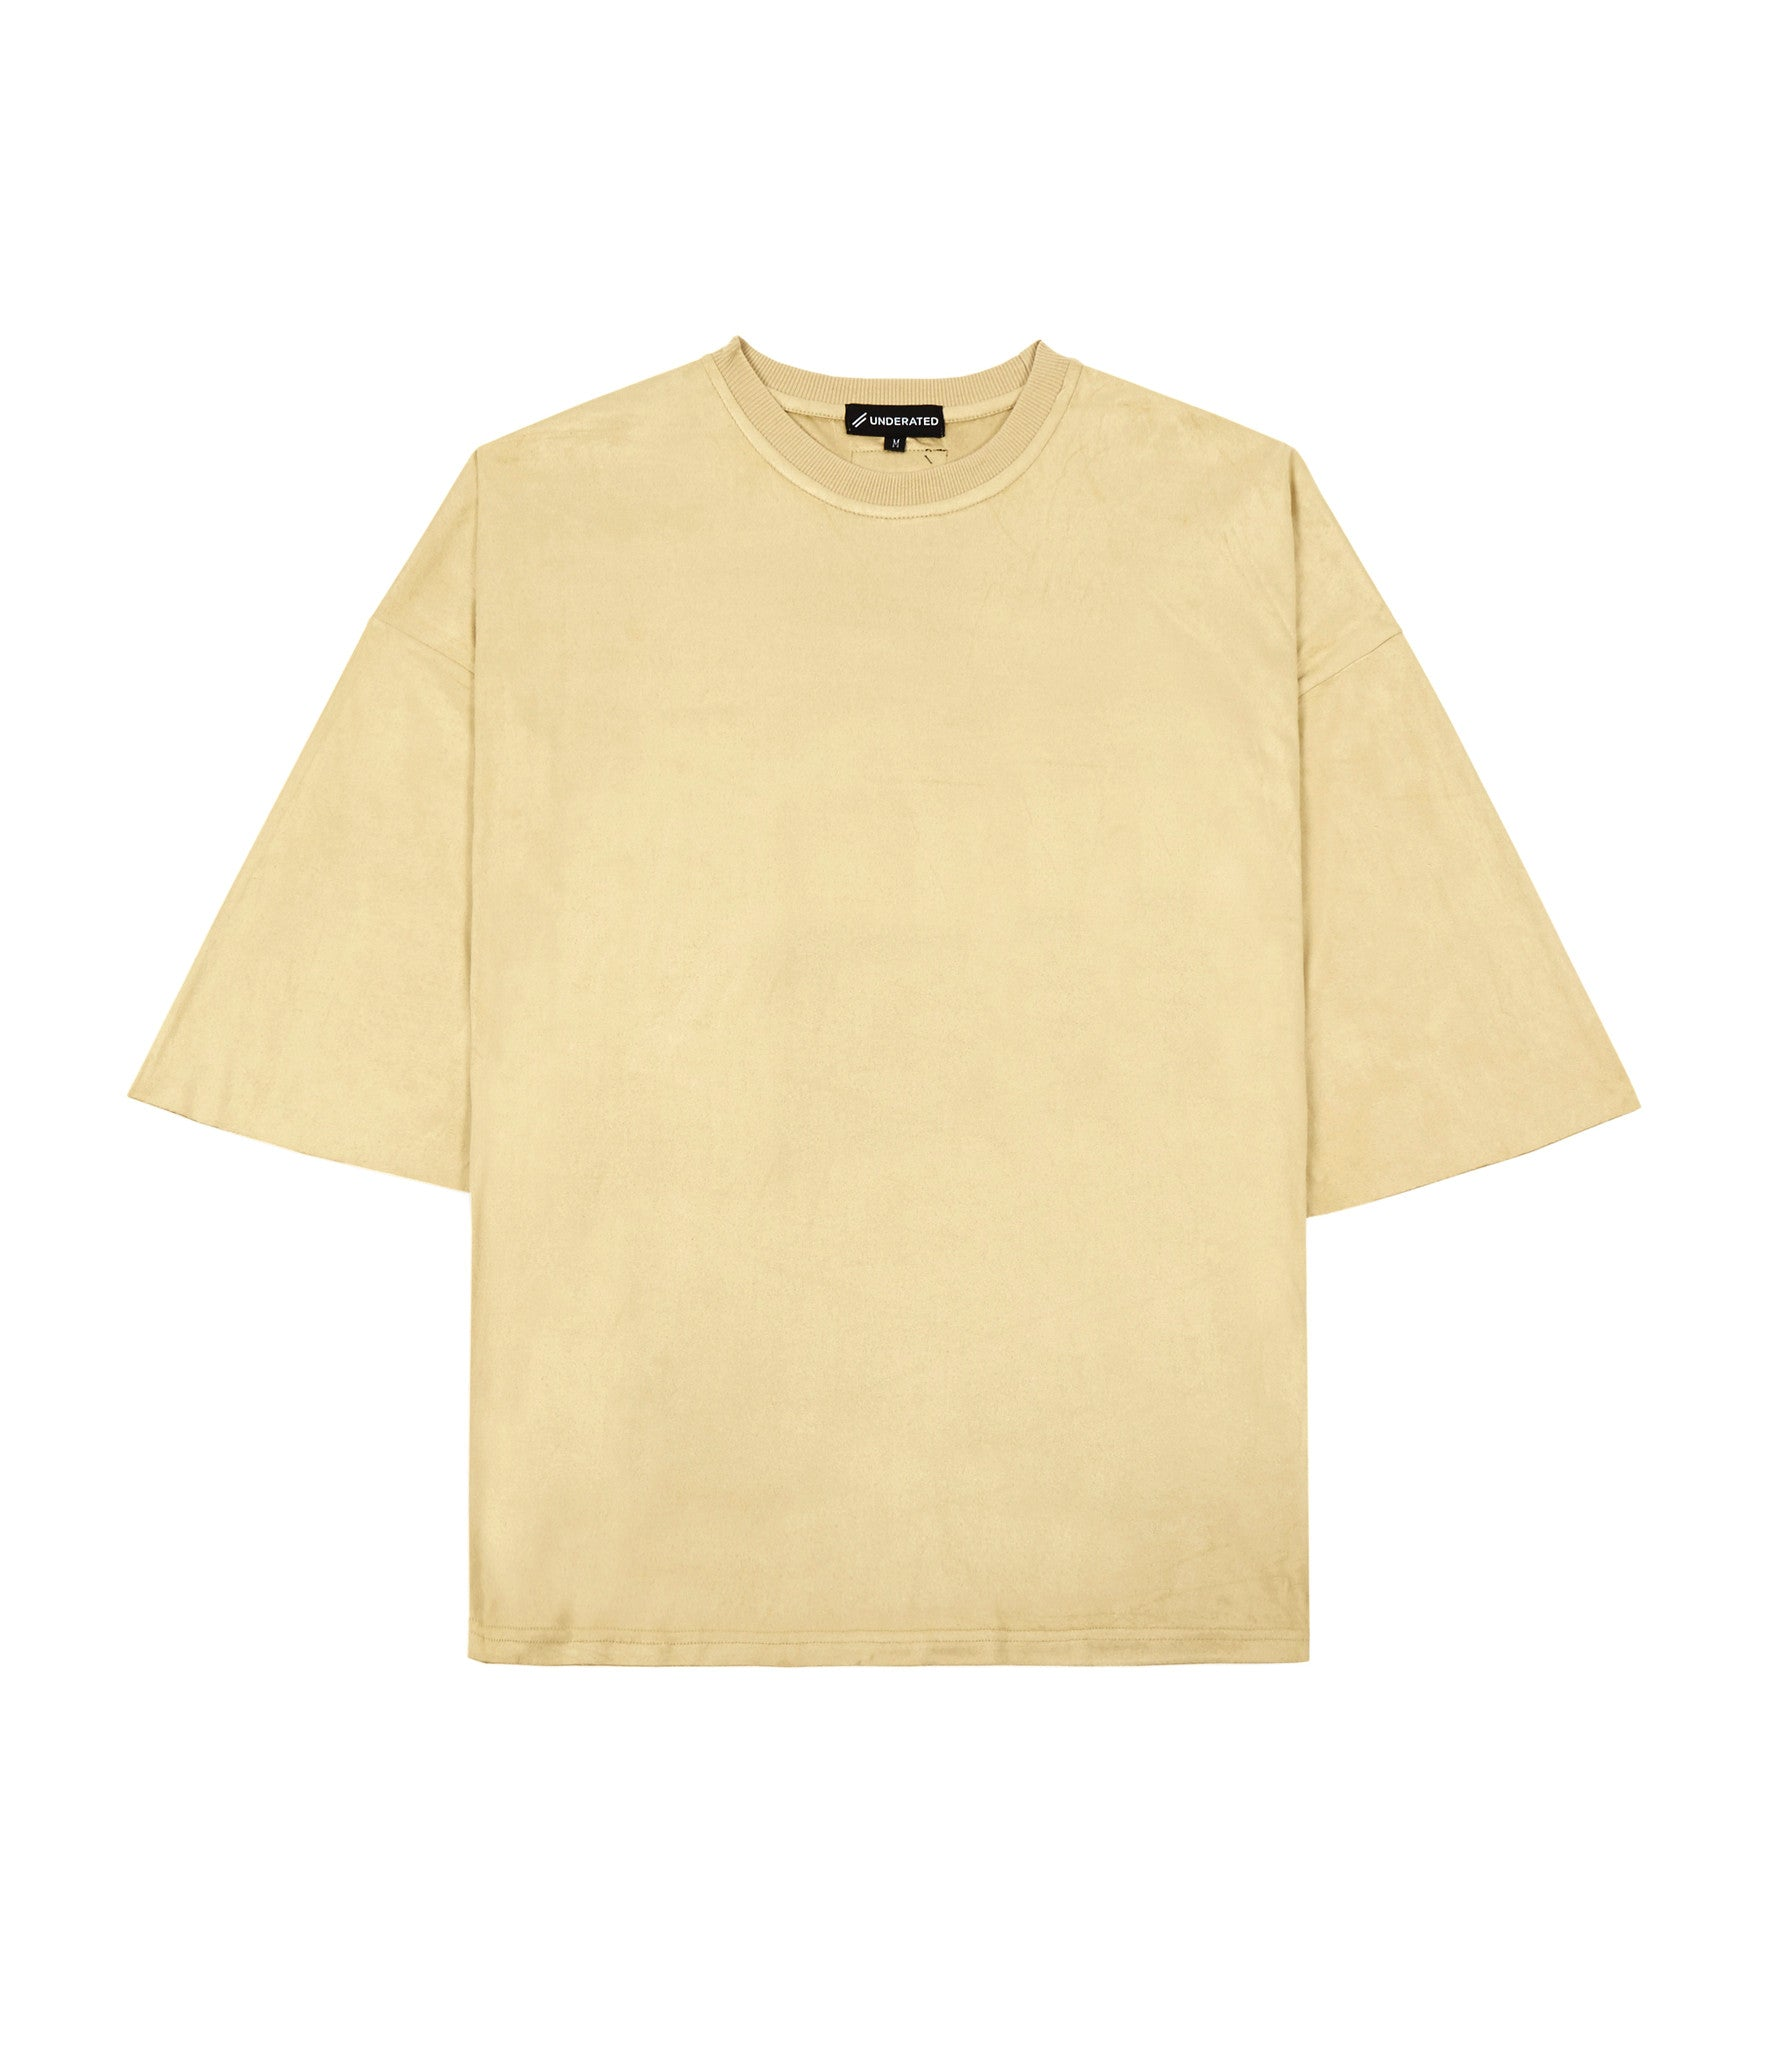 TS302 Suede Oversized Box Tee - Beige - underated london - underatedco - 2